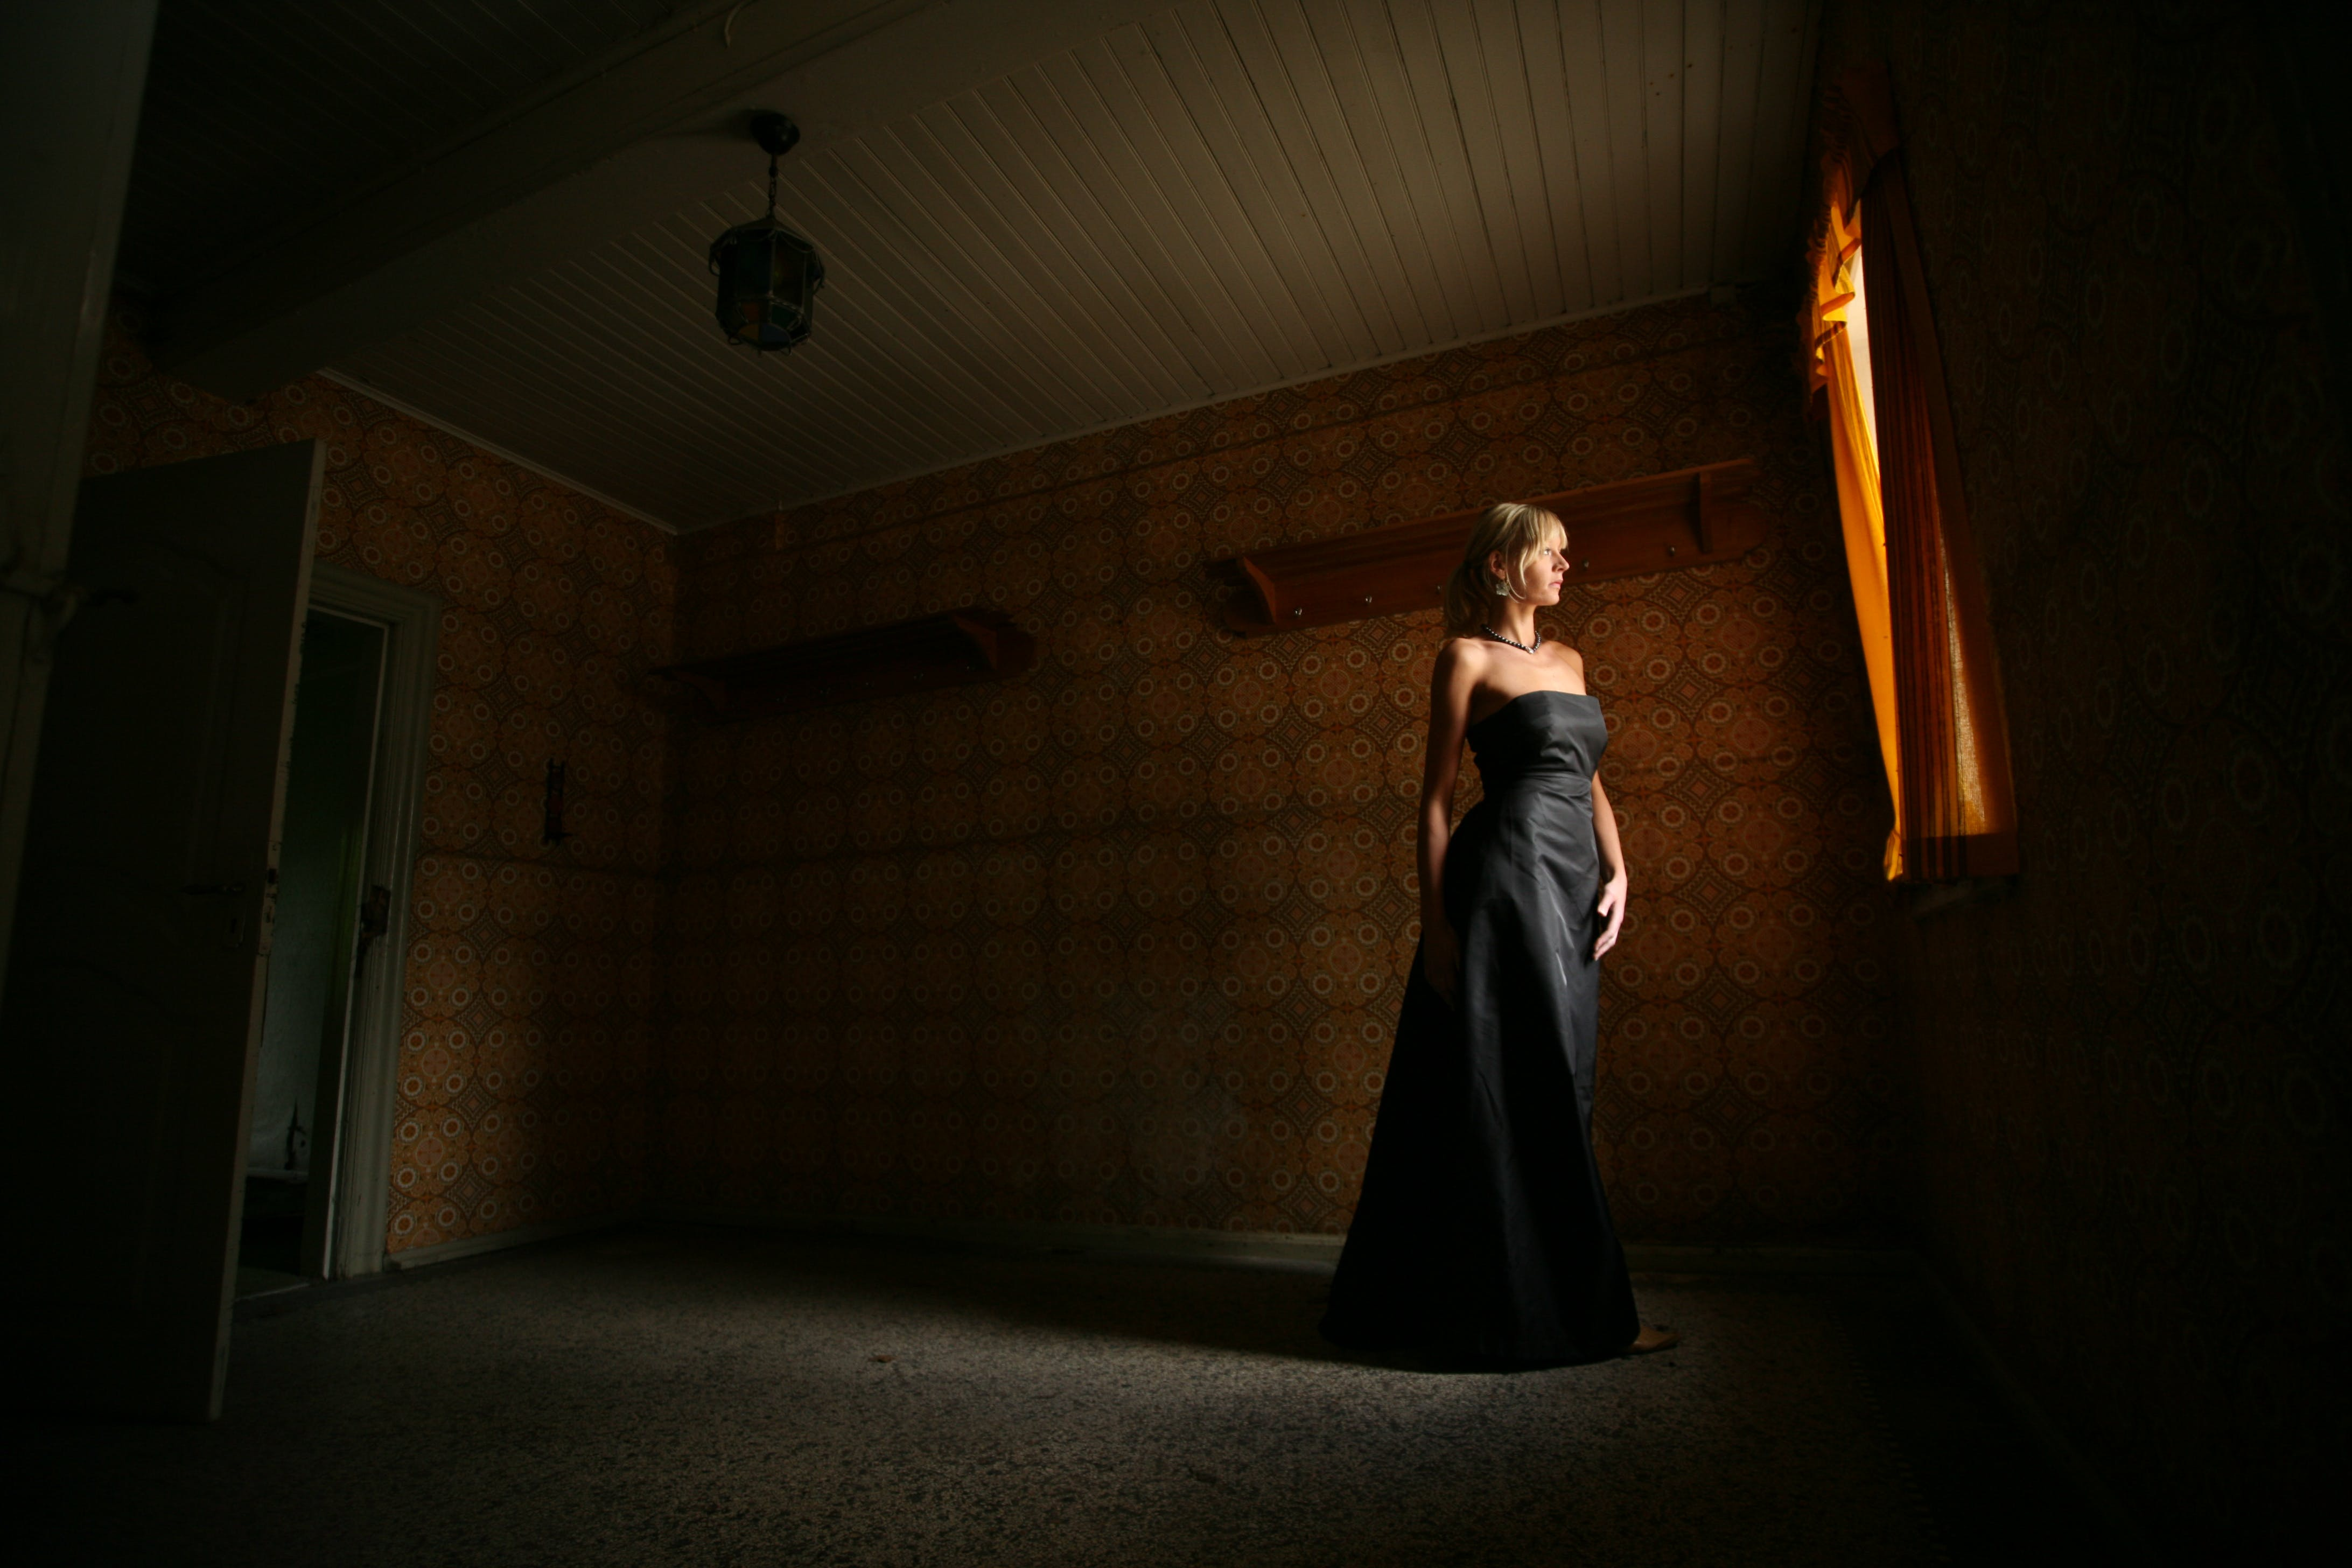 Photography of Woman in Black Dress in Room